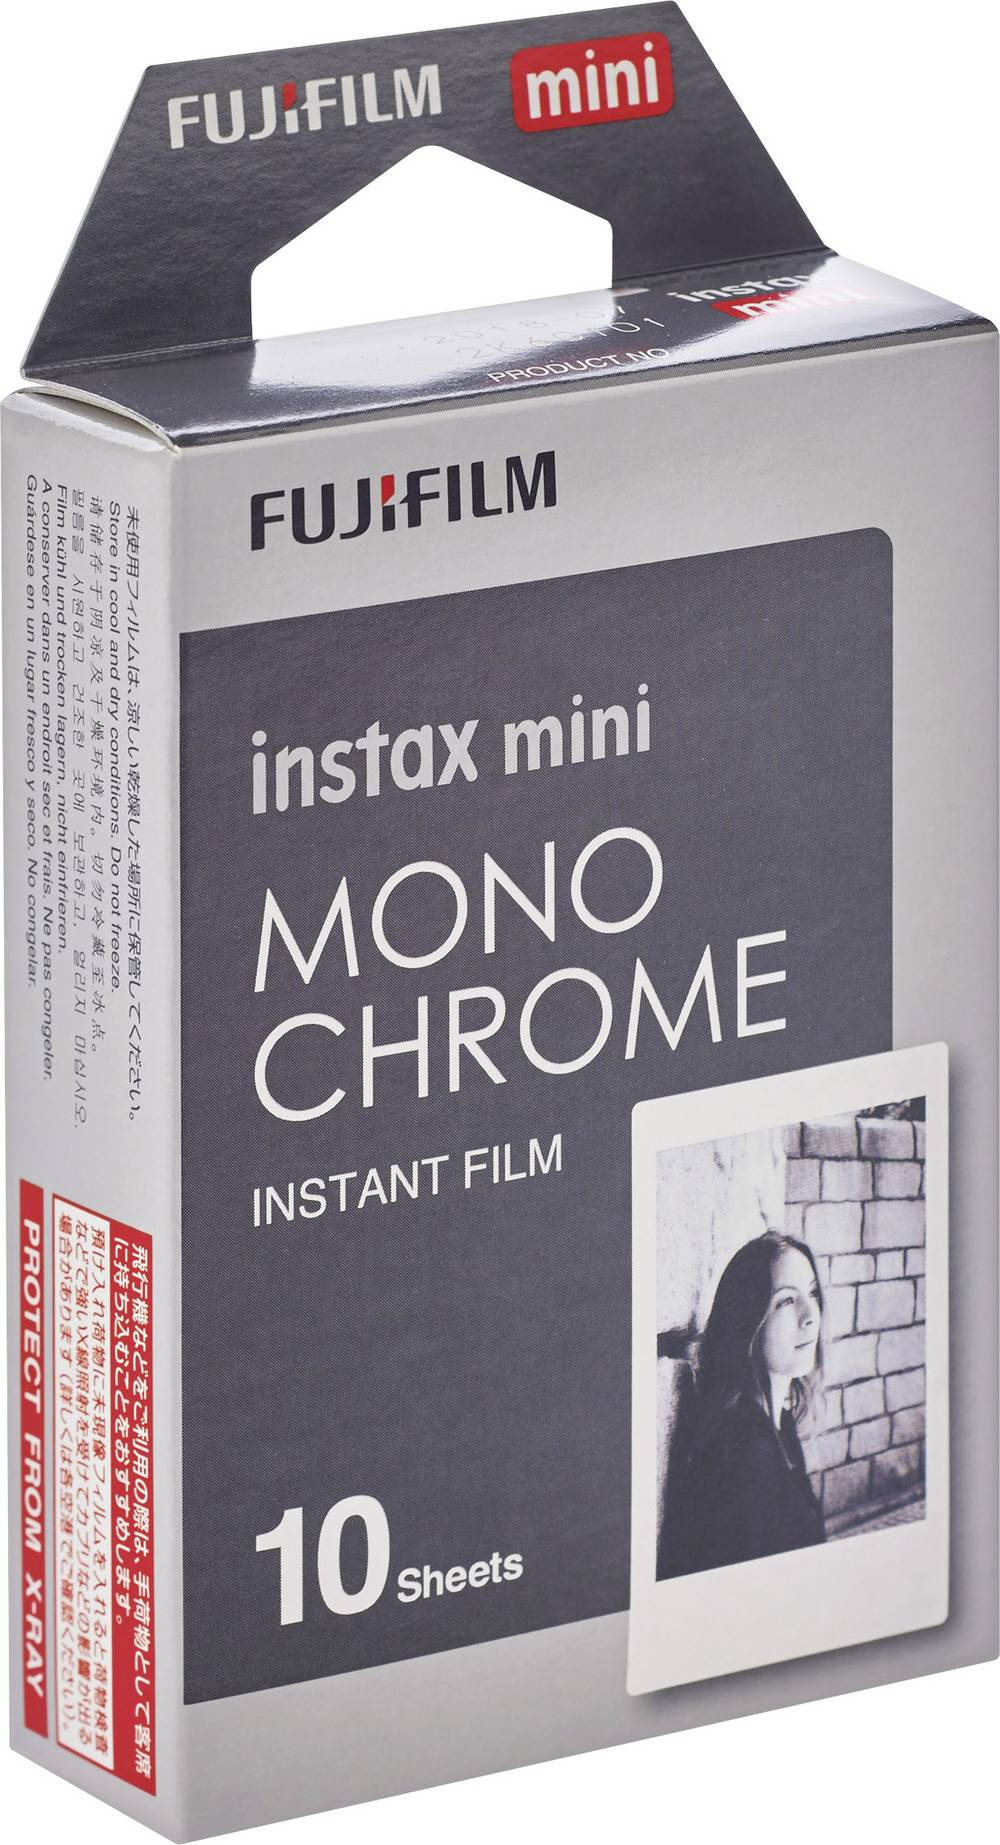 Fujifilm-Instax-Mini-Monochrome-Sofortbild-Film Indexbild 2